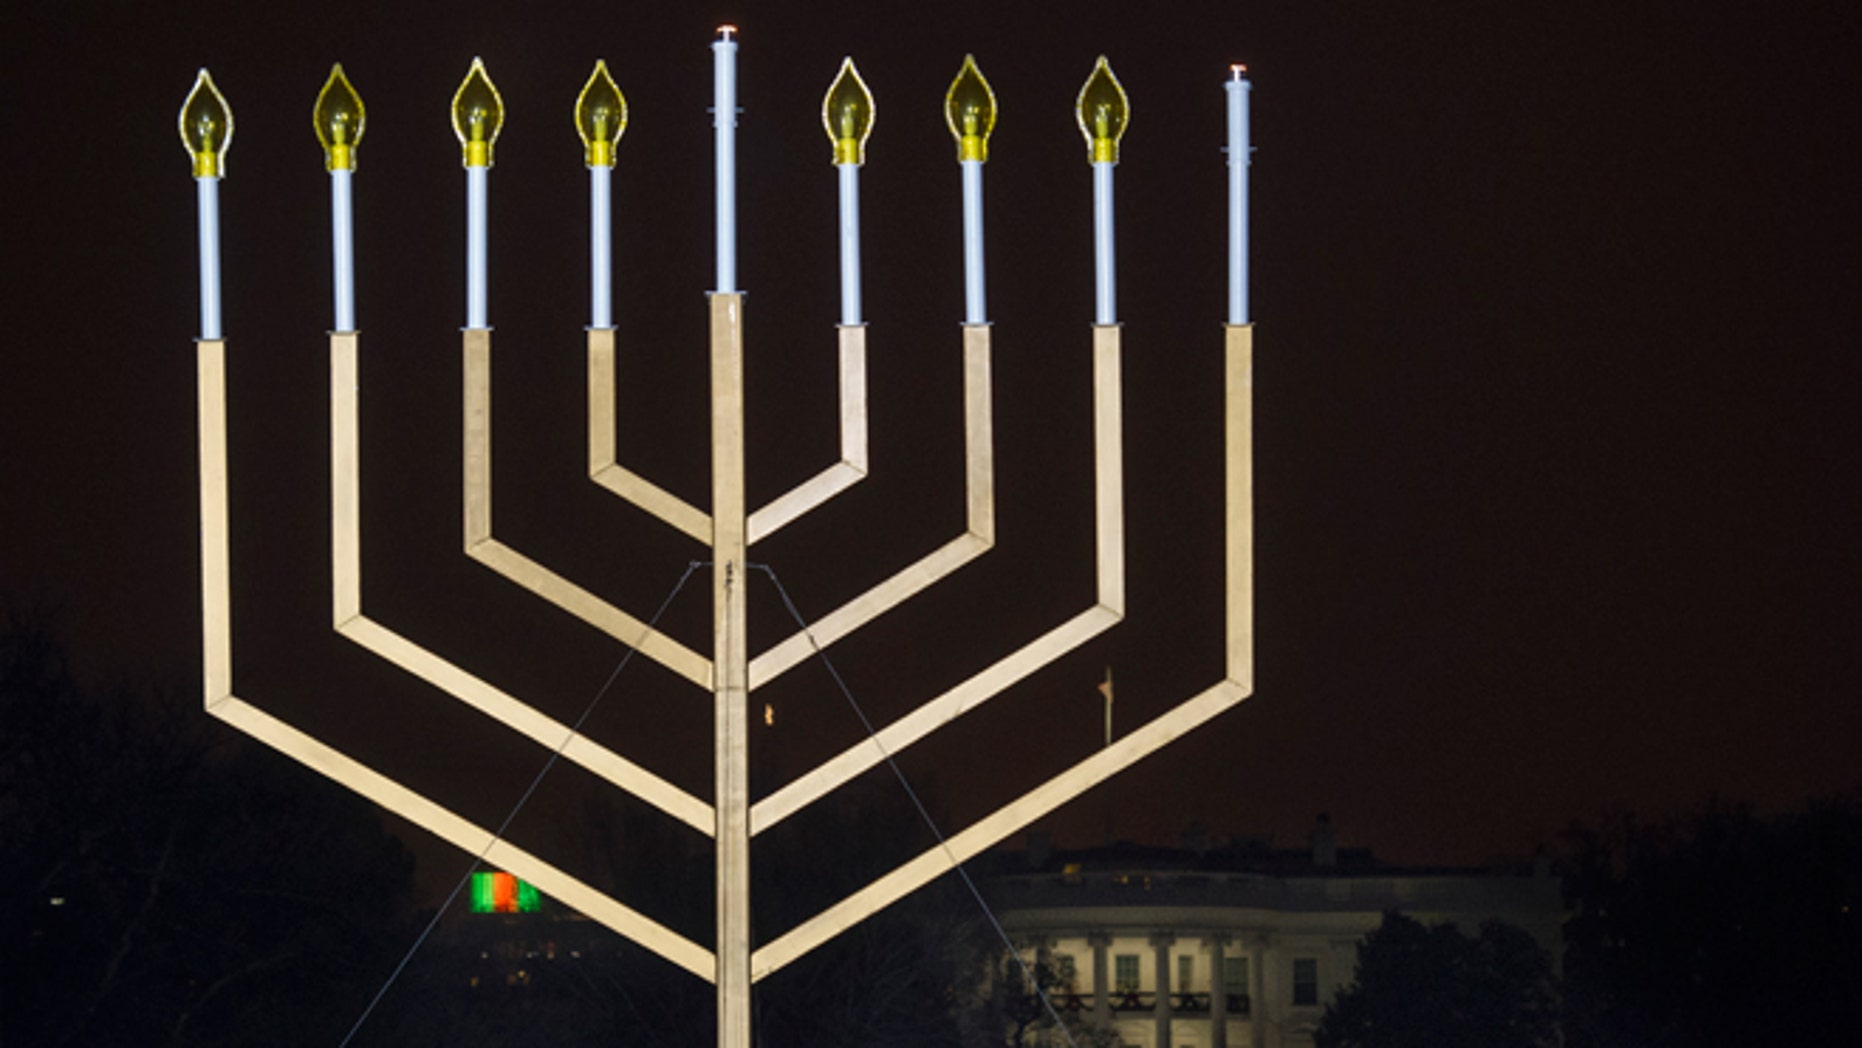 Dec. 16, 2014: The White House is in the background after the national menorah was lit during a ceremony marking the start of the celebration of Hanukkah, on the Ellipse near the White House in Washington.